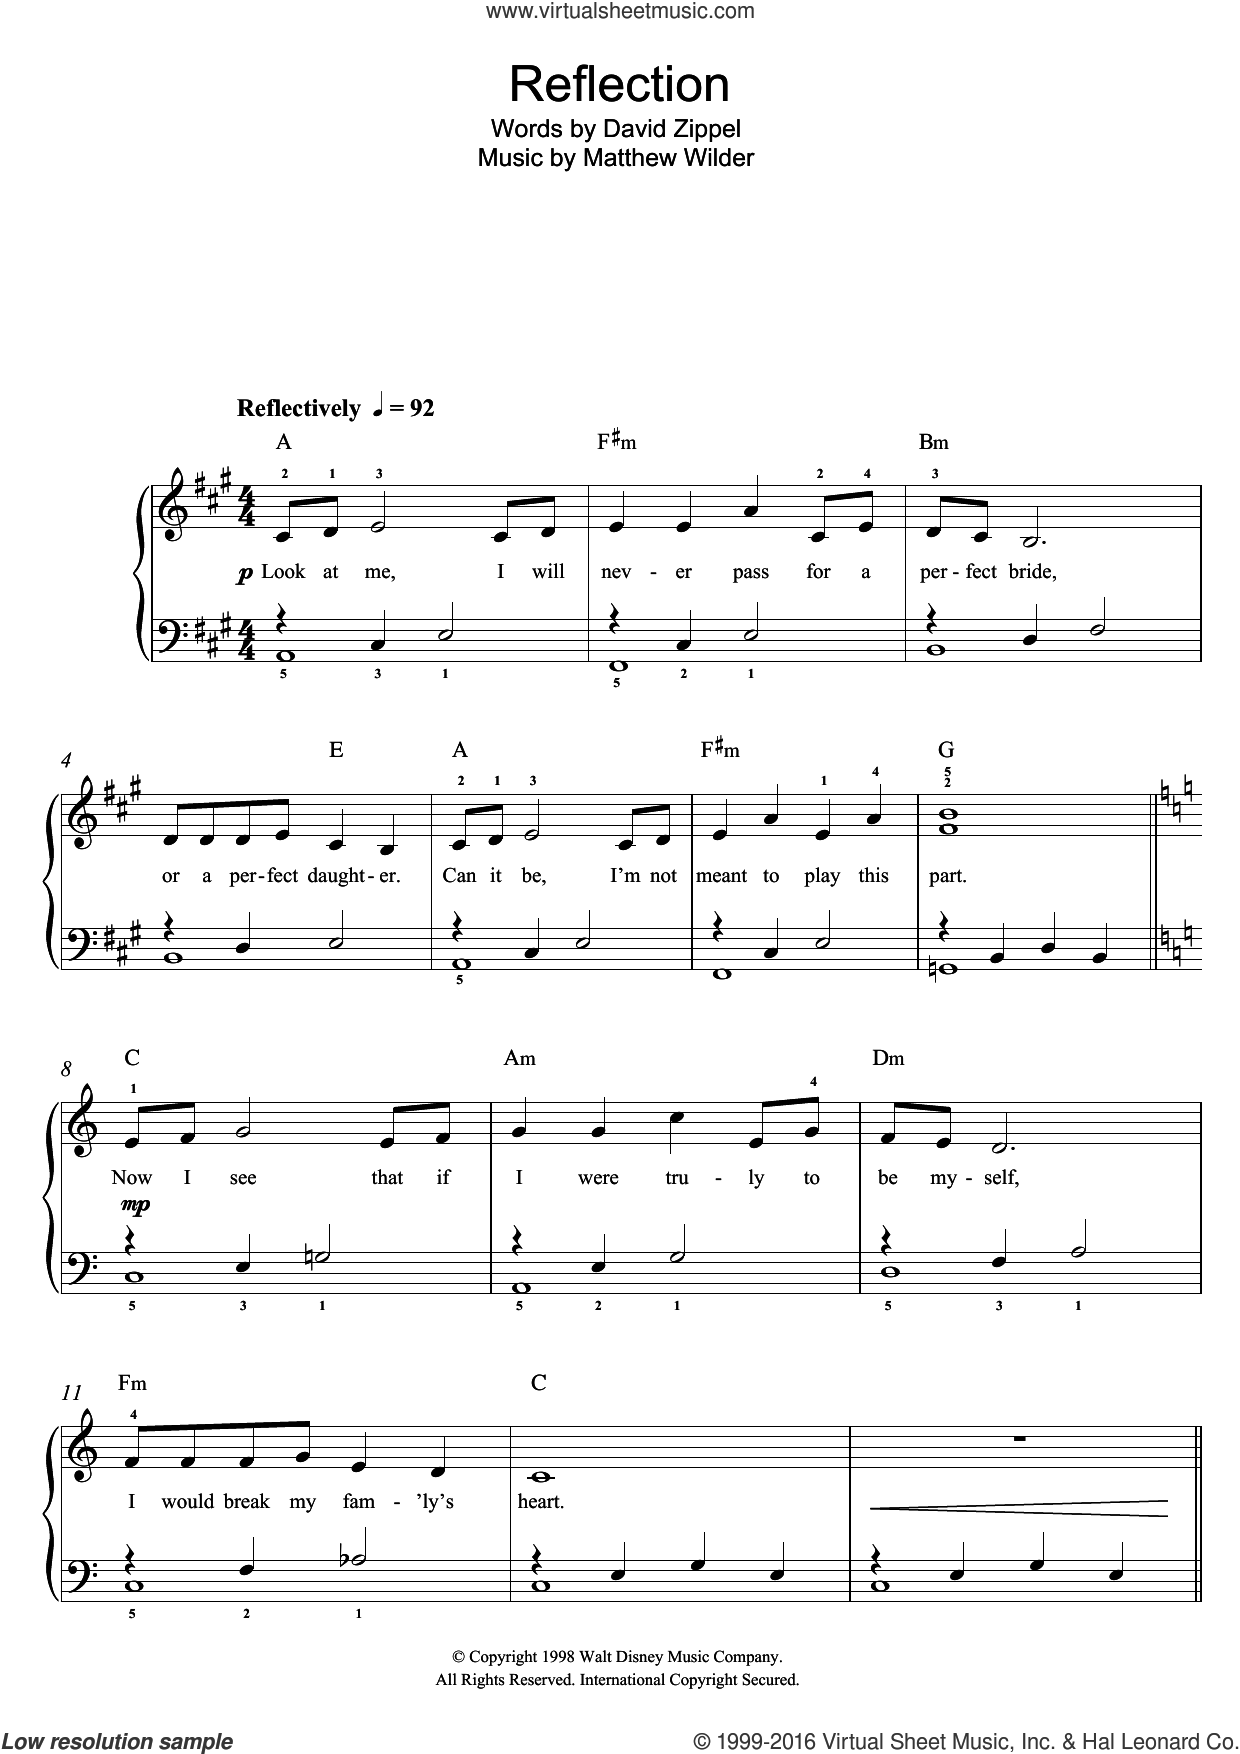 Reflection (From 'Mulan') sheet music for voice, piano or guitar by Matthew Wilder, Christina Aguilera and David Zippel. Score Image Preview.